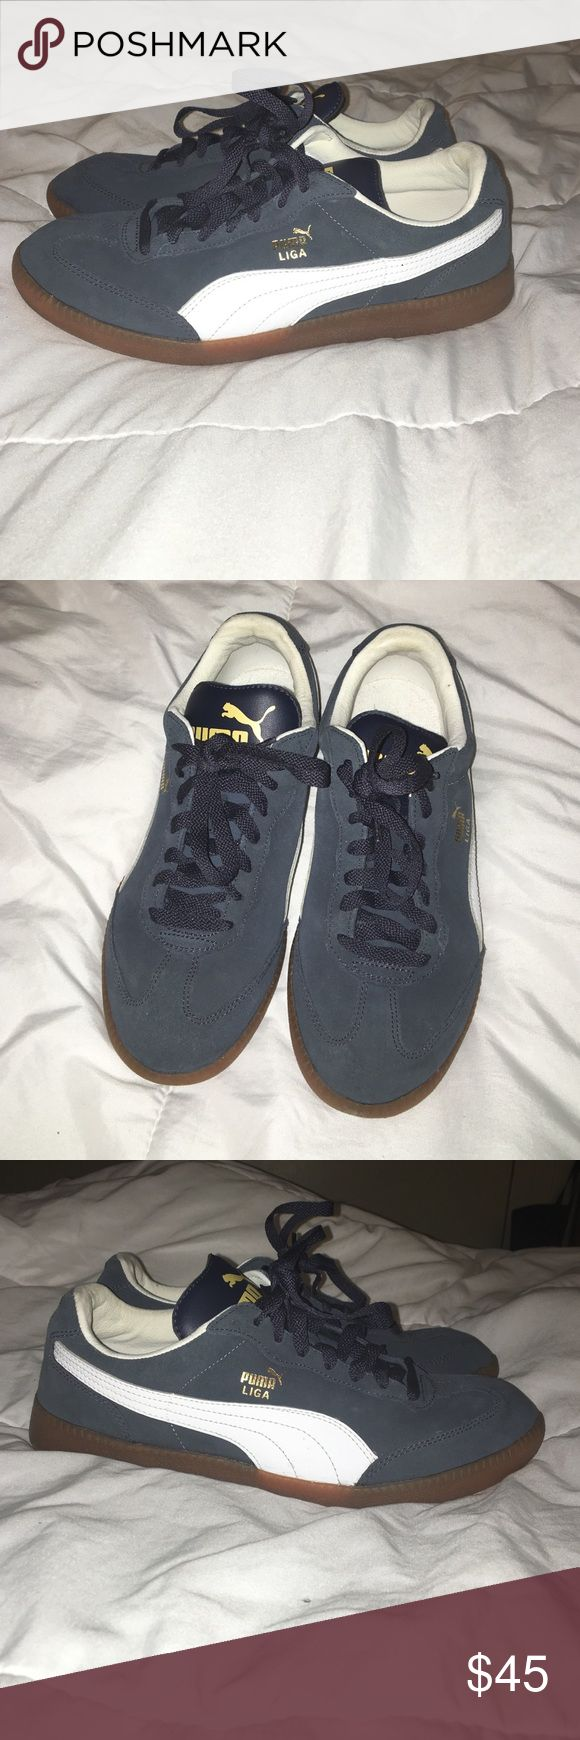 Puma Liga size 8.5 Worn once and are super comfortable sporty casual sneakers Puma Shoes Athletic Shoes